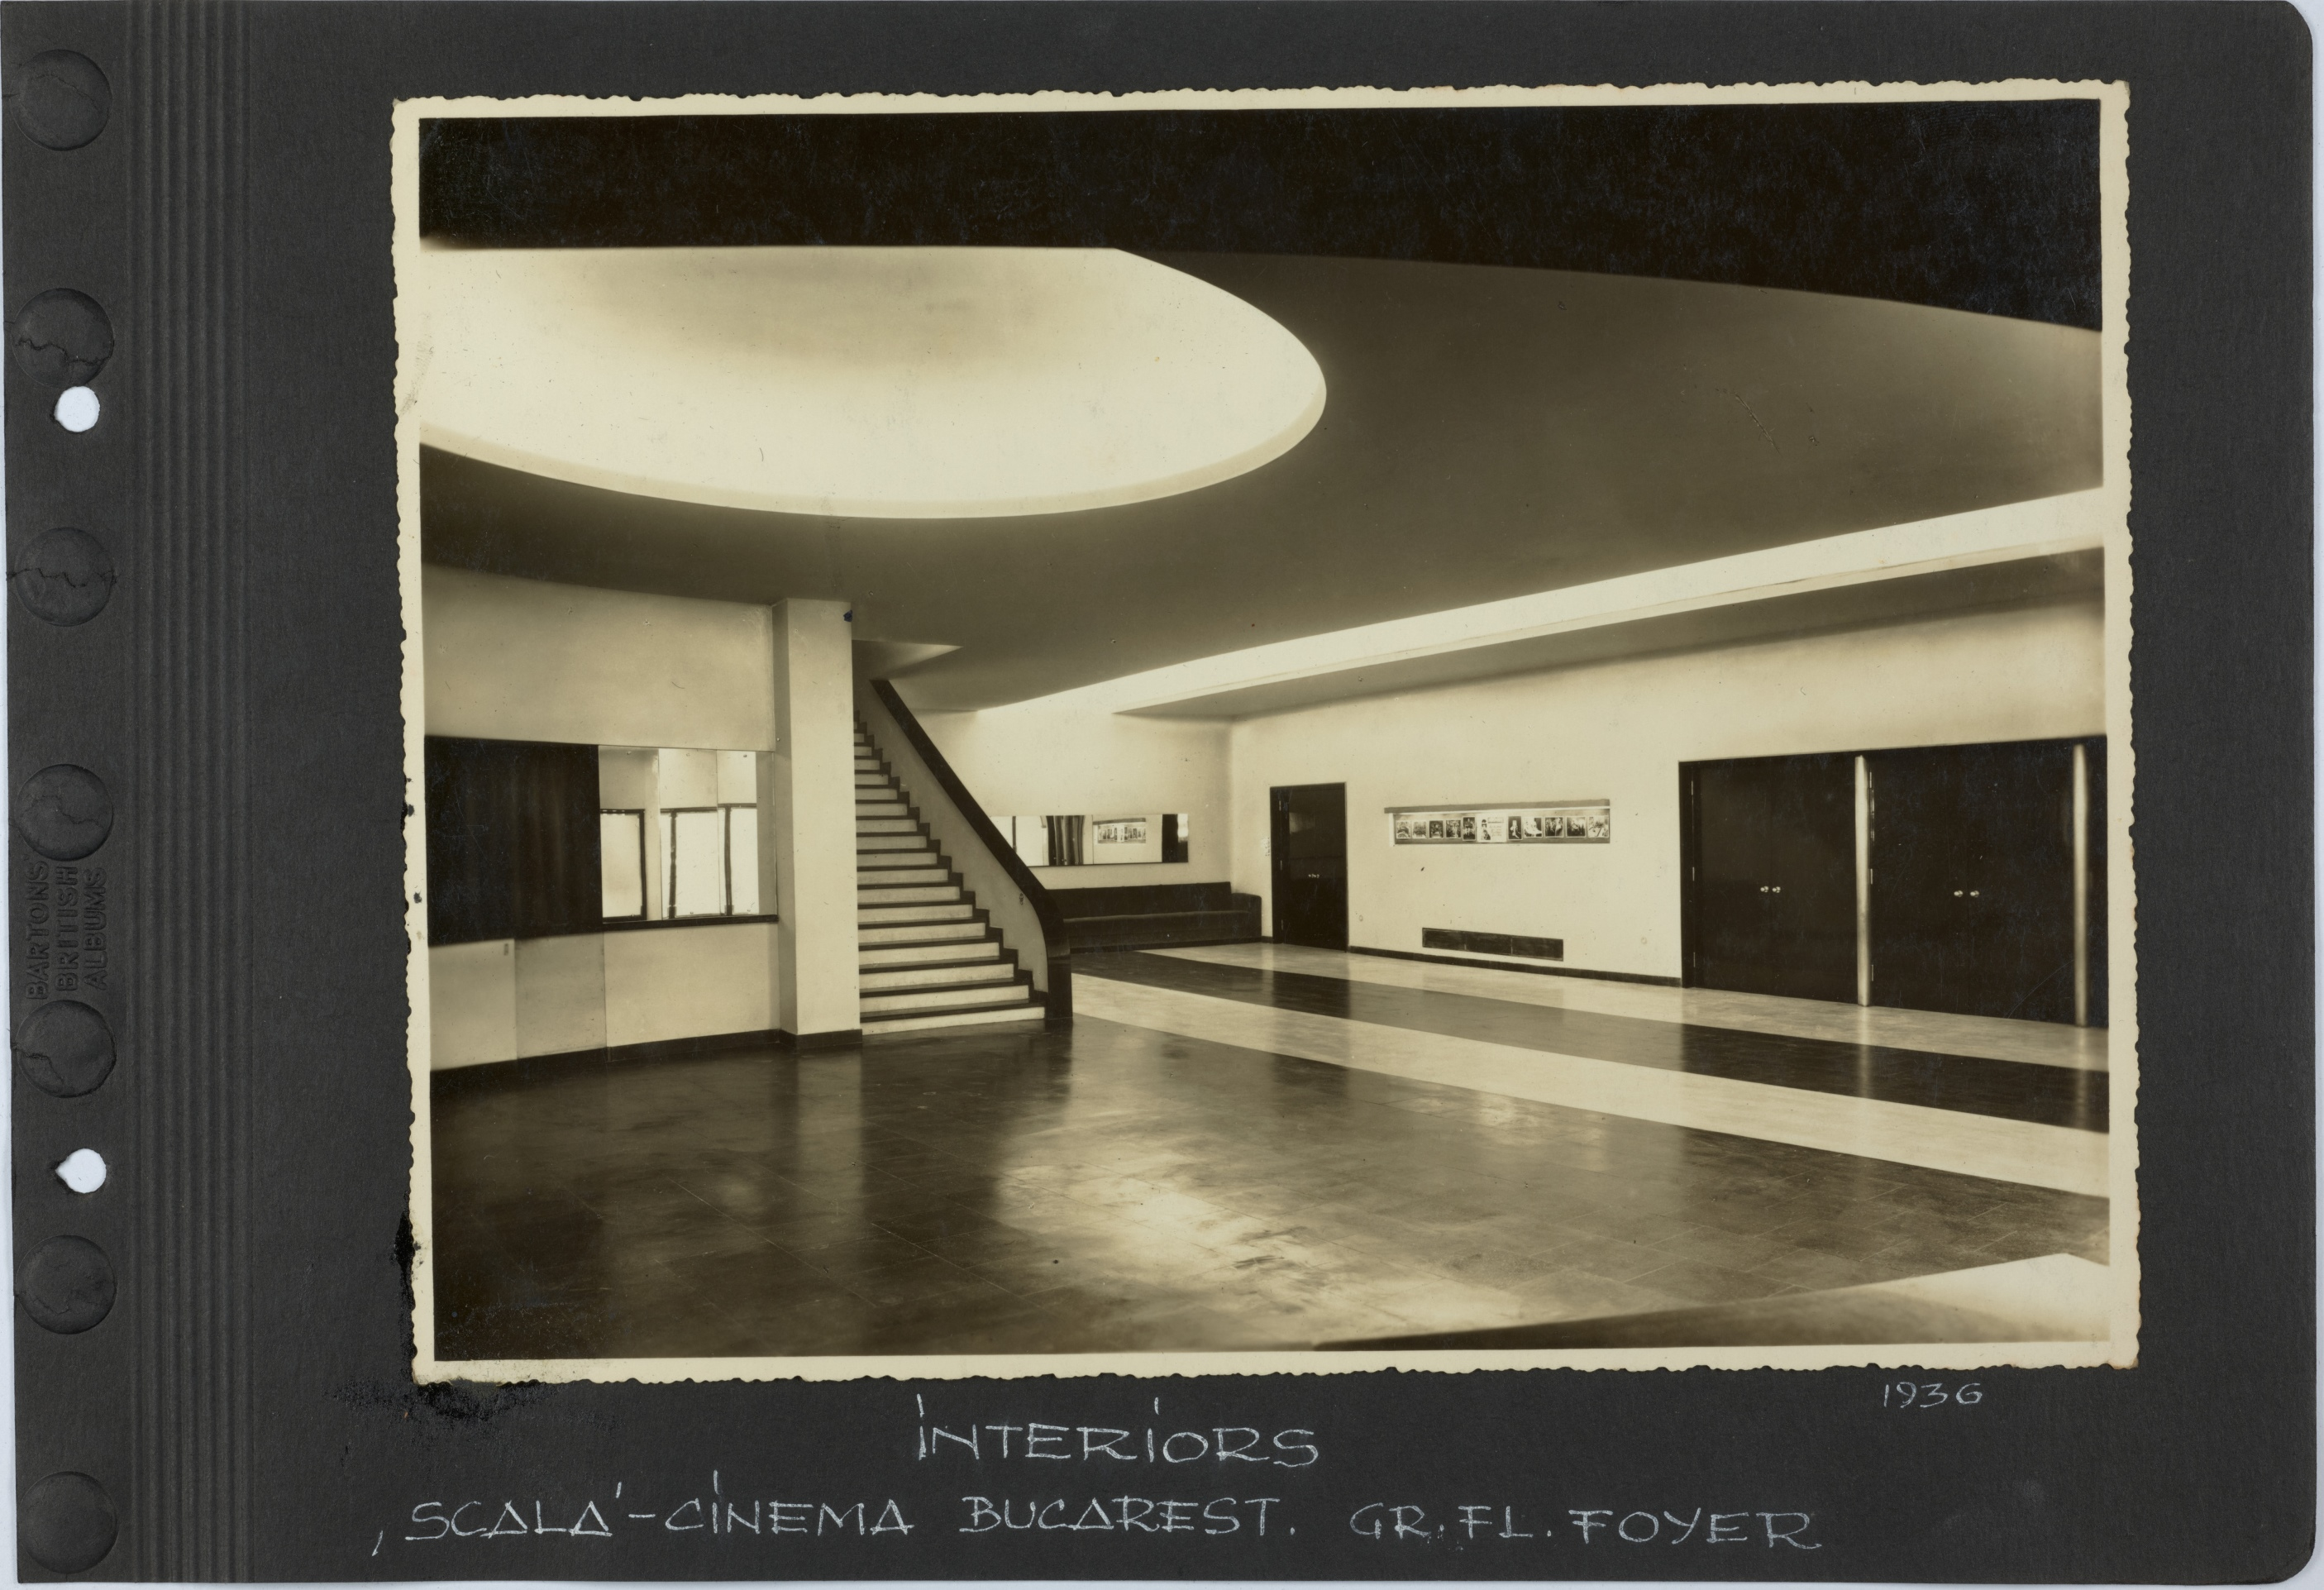 Scala Cinema Bucarest. Gr .fl. foyer, 1936